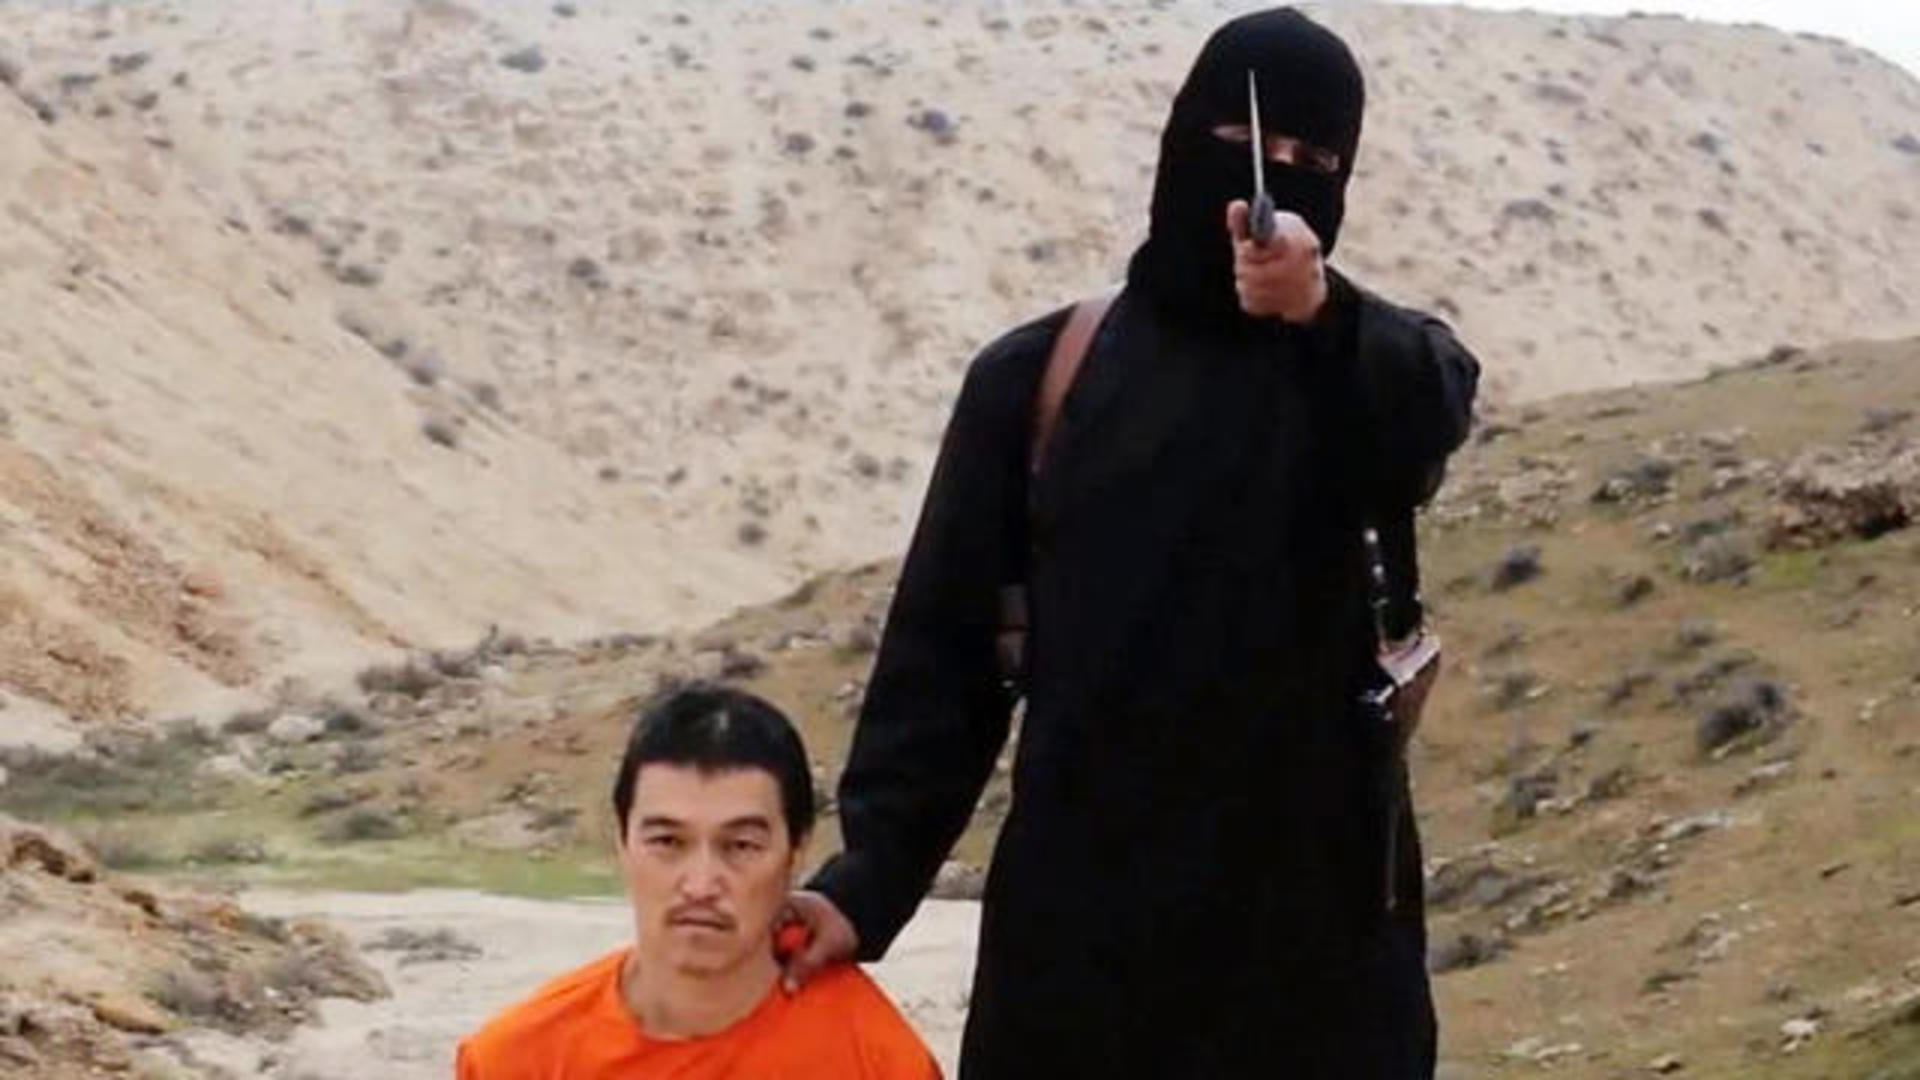 ISIS releases another video of beheading - CBS News